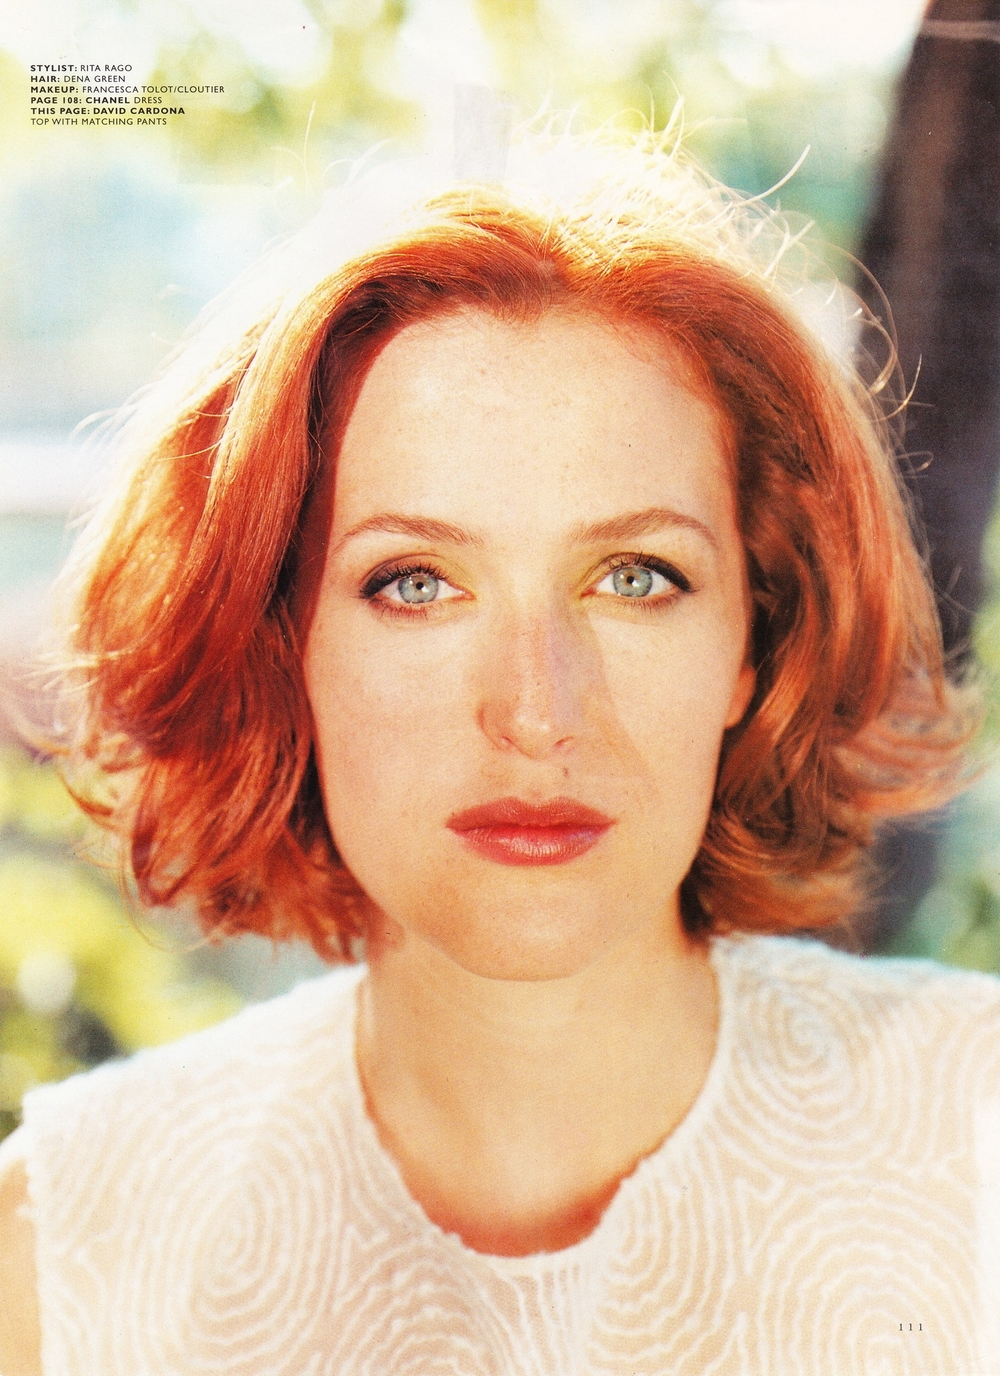 LOS ANGELES MAGAZINE - Gillian Anderson in David Cardona